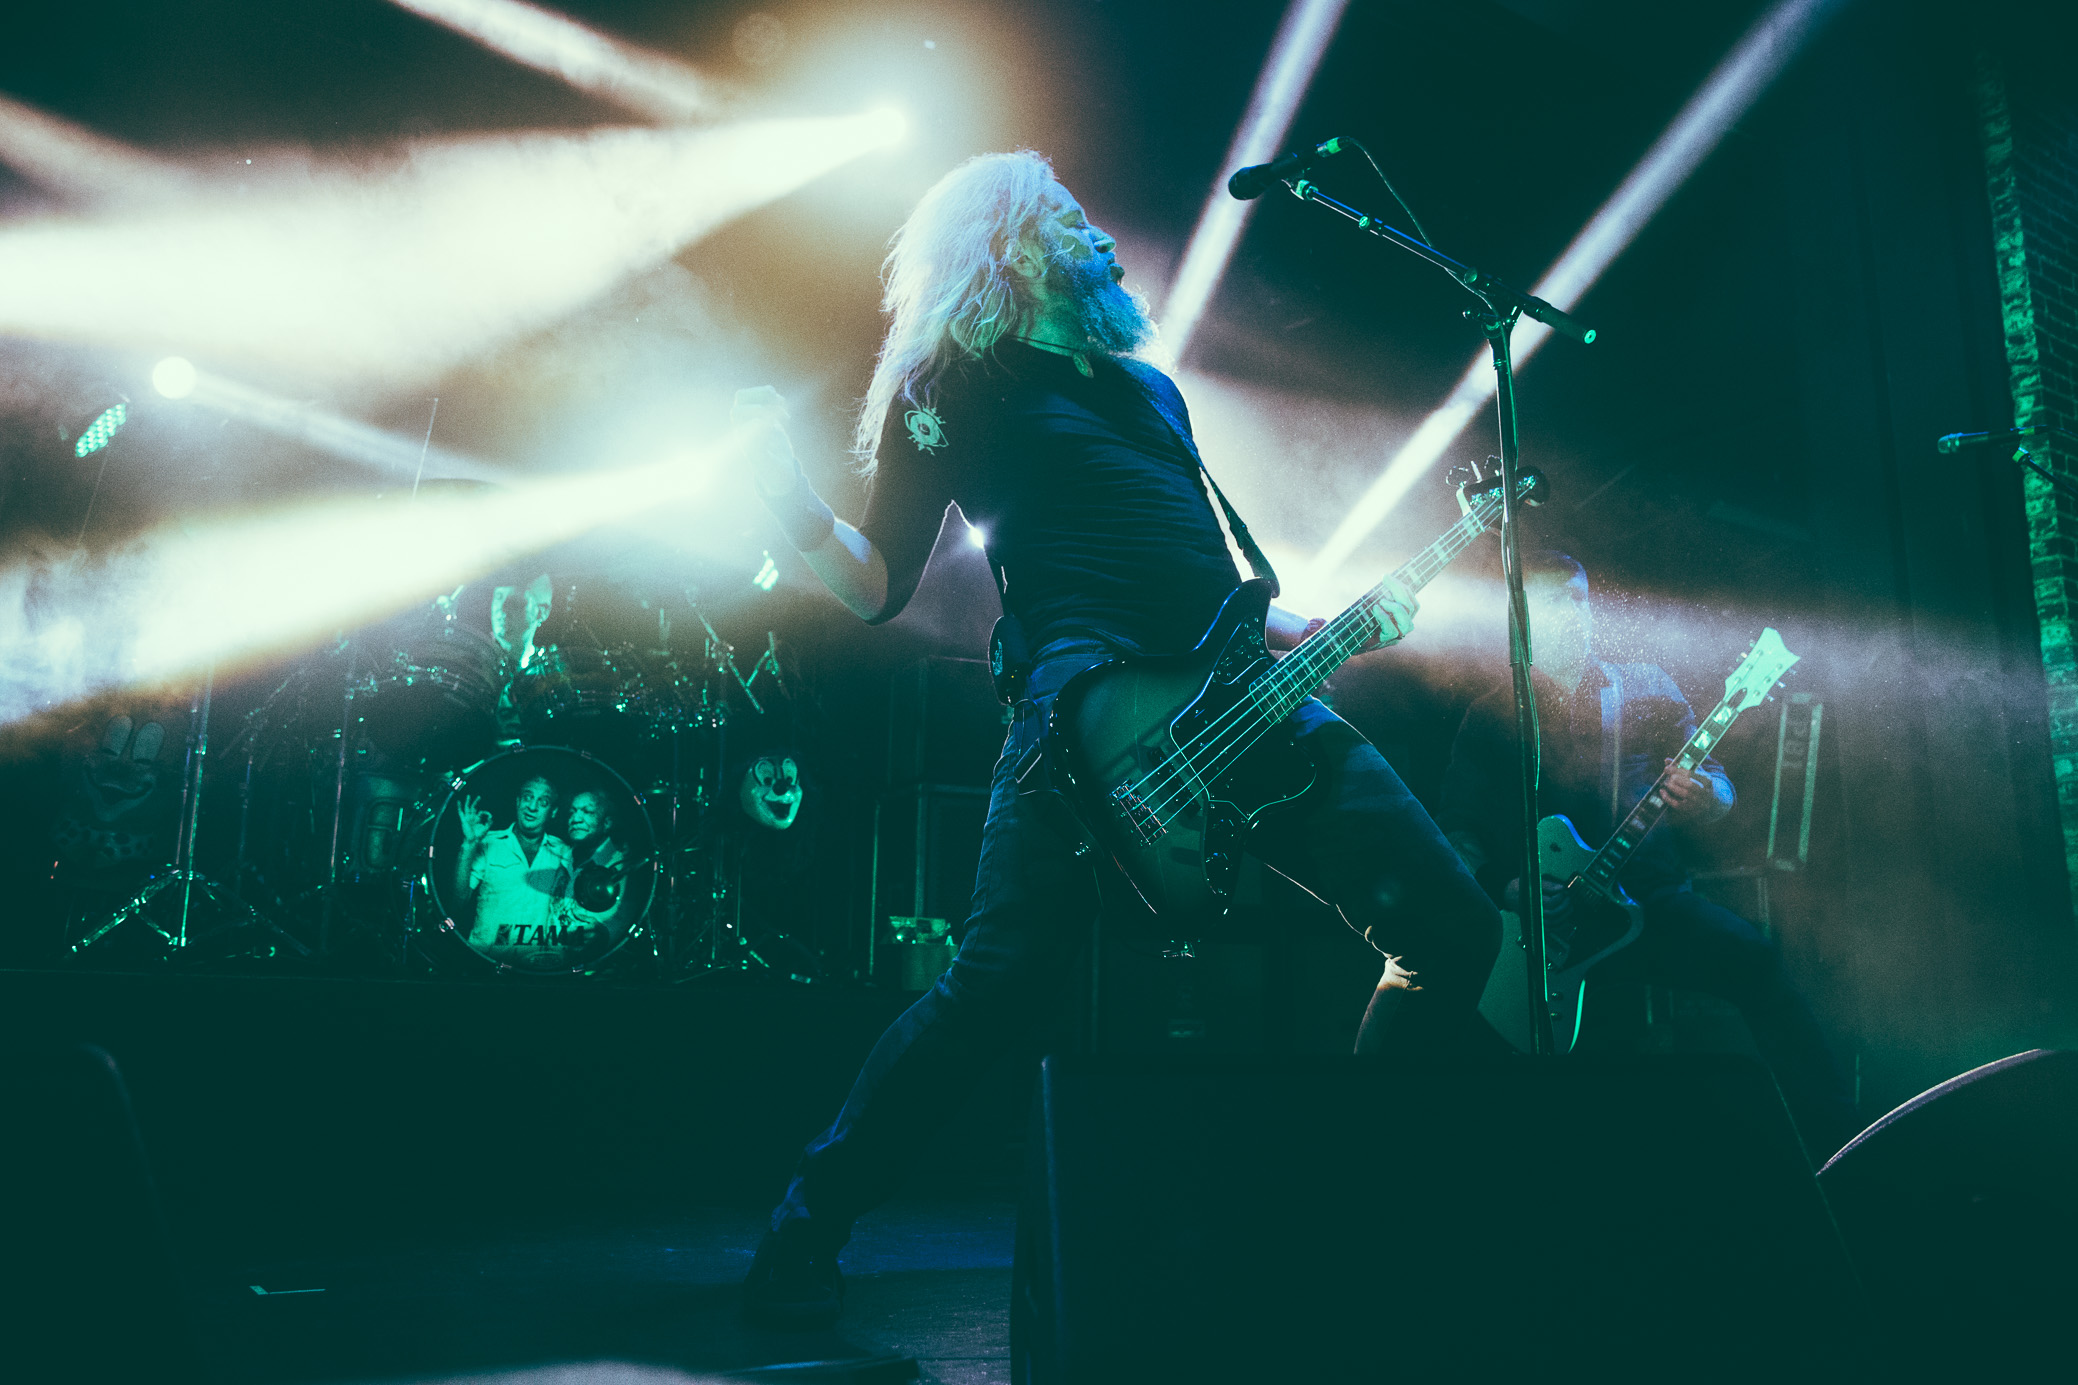 Troy Sanders of Mastodon performs in concert at Iron City in Birmingham, Alabama on April 28th, 2017. (Photo by David A. Smith/DSmithScenes)